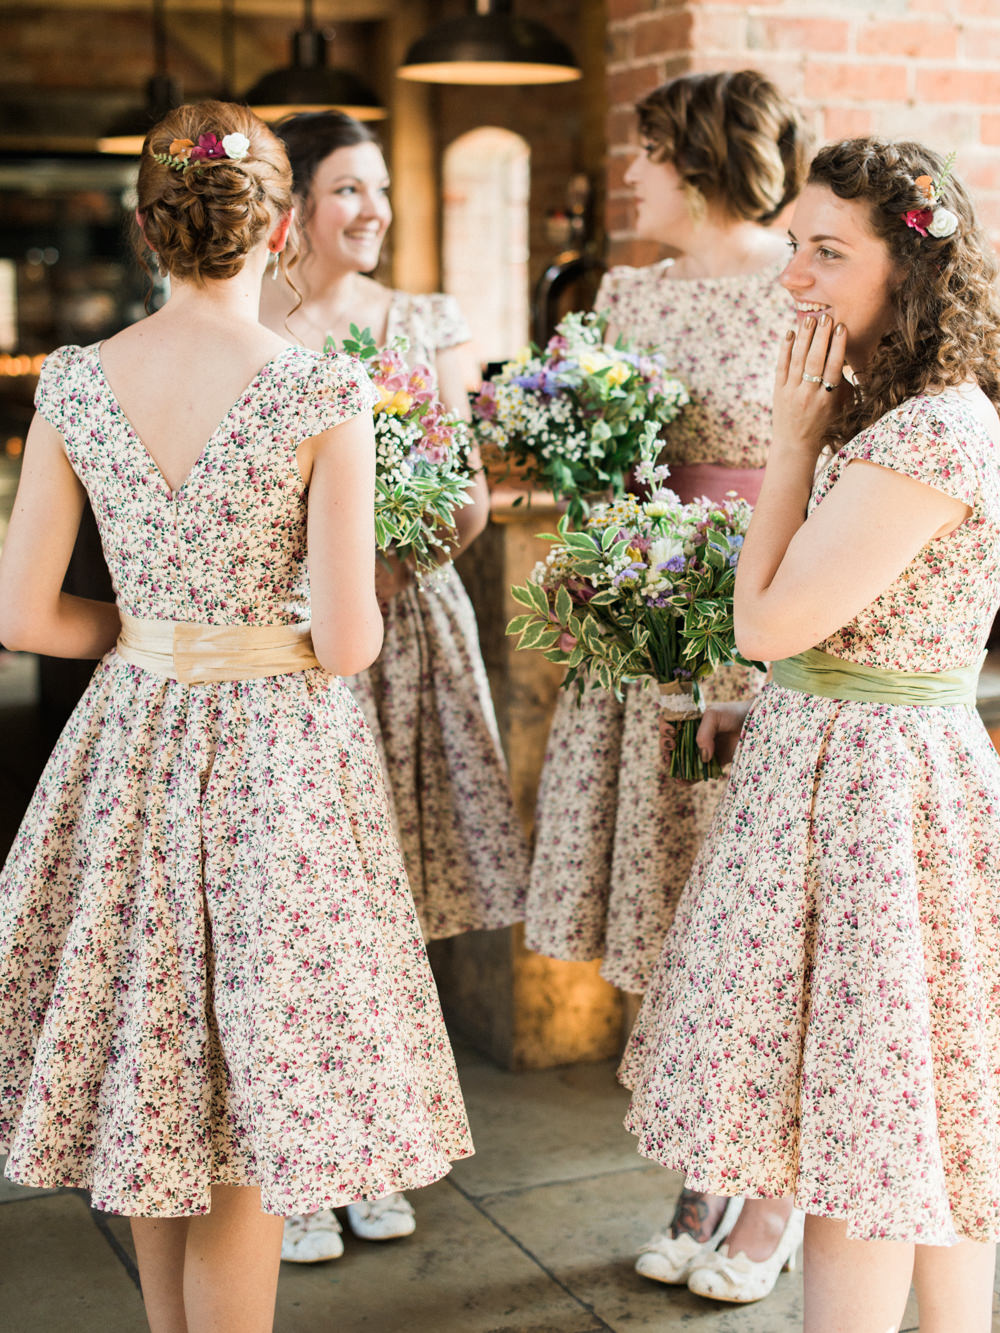 Rustic wedding at shustoke farm barn with floral bridesmaid dresses ditsy print floral bridesmaid dresses ombrellifo Choice Image